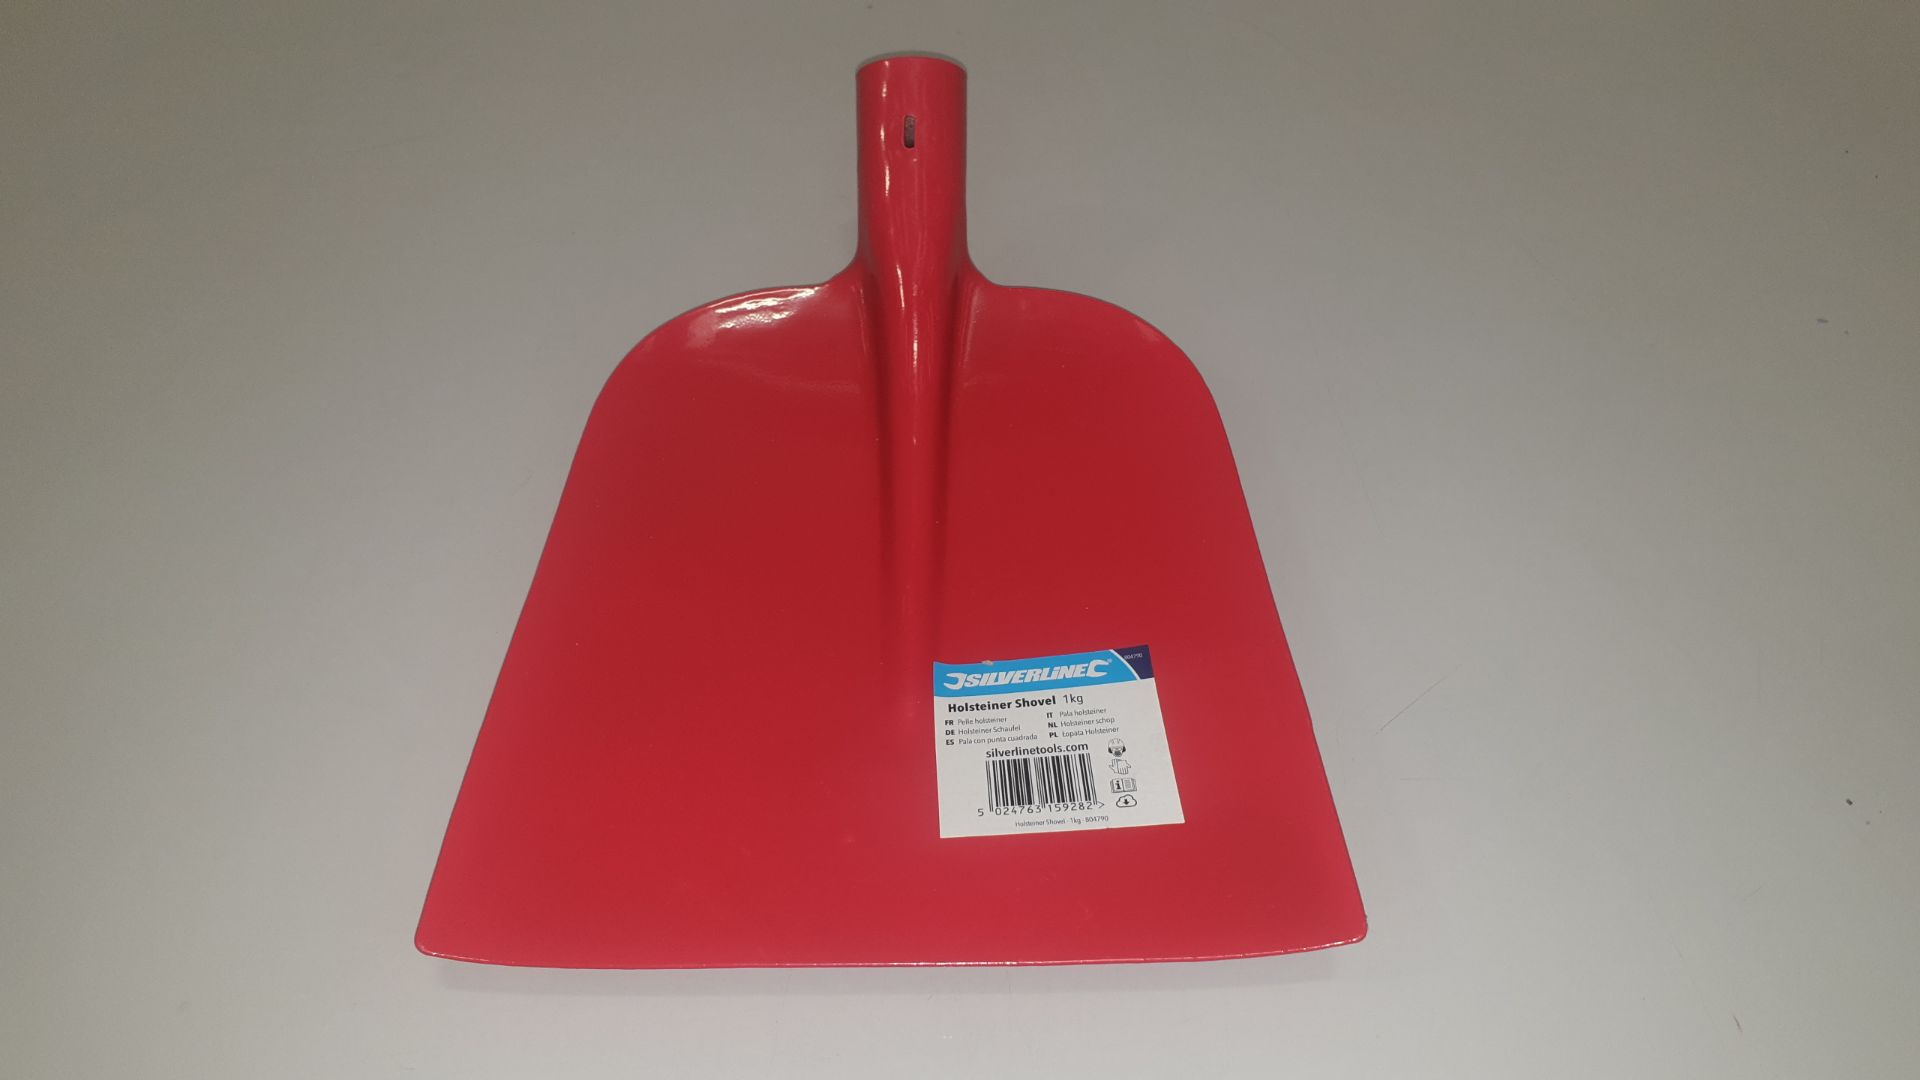 Lot 318 - 60 X BRAND NEW SILVERLINE CONTRACTORS HOLSTEINERSHOVEL 1KG (PROD CODE 804790) TRADE PRICE £5.06 EACH